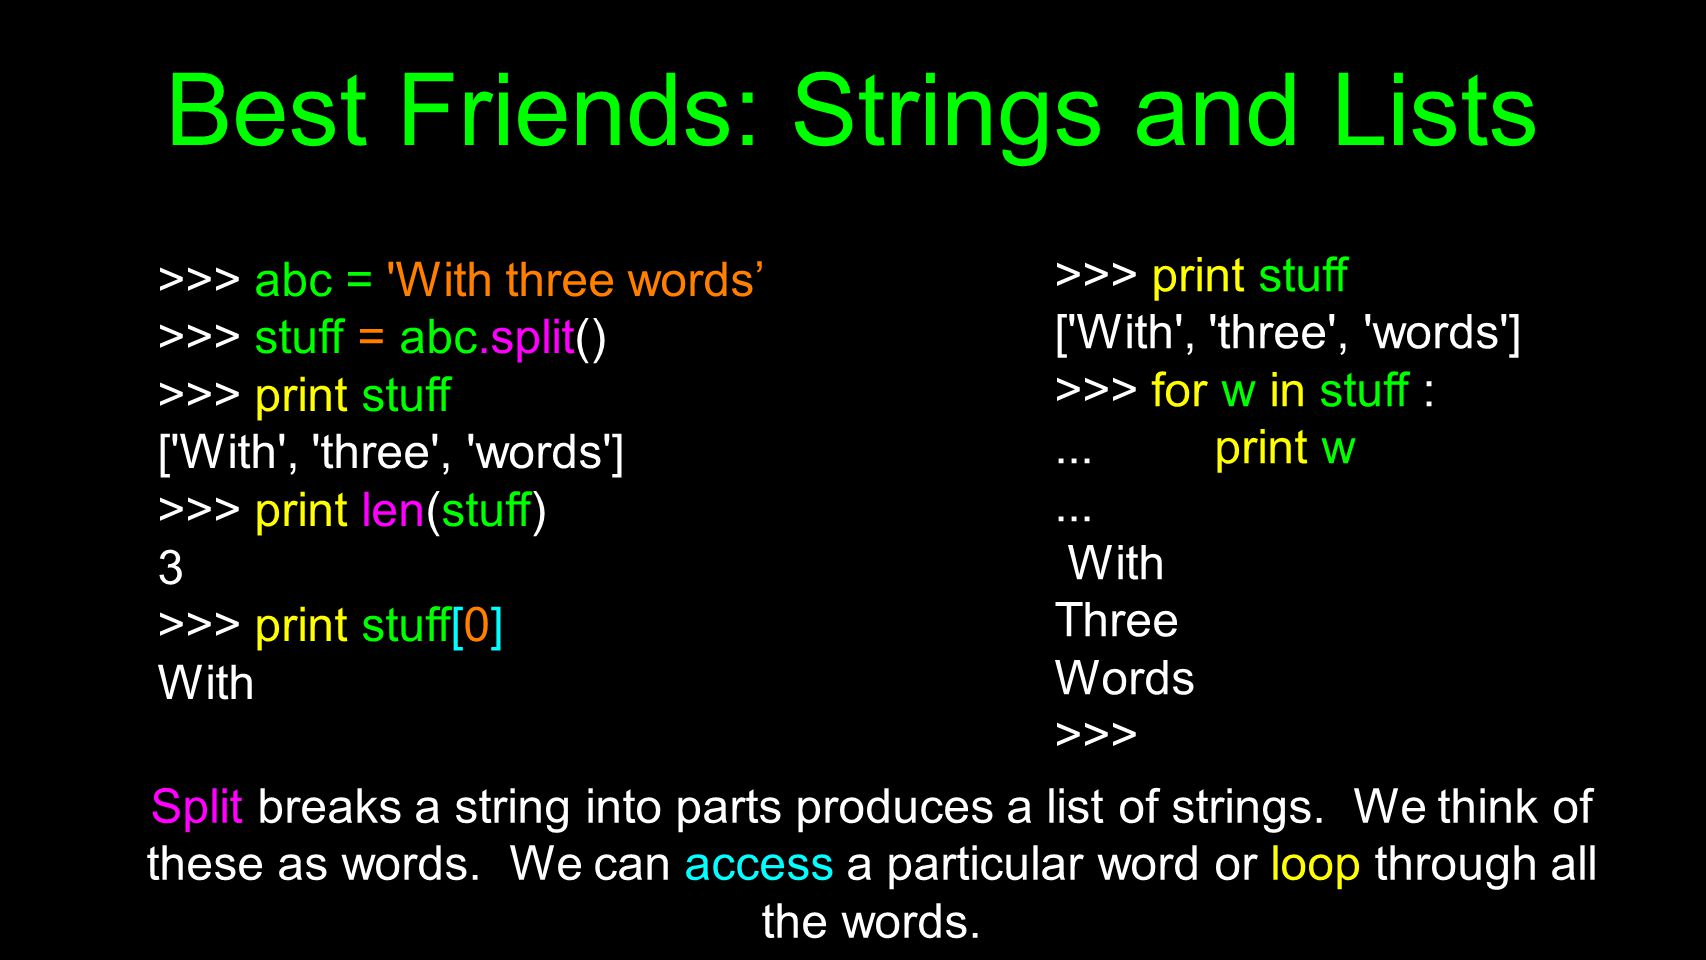 Best Friends: Strings and Lists